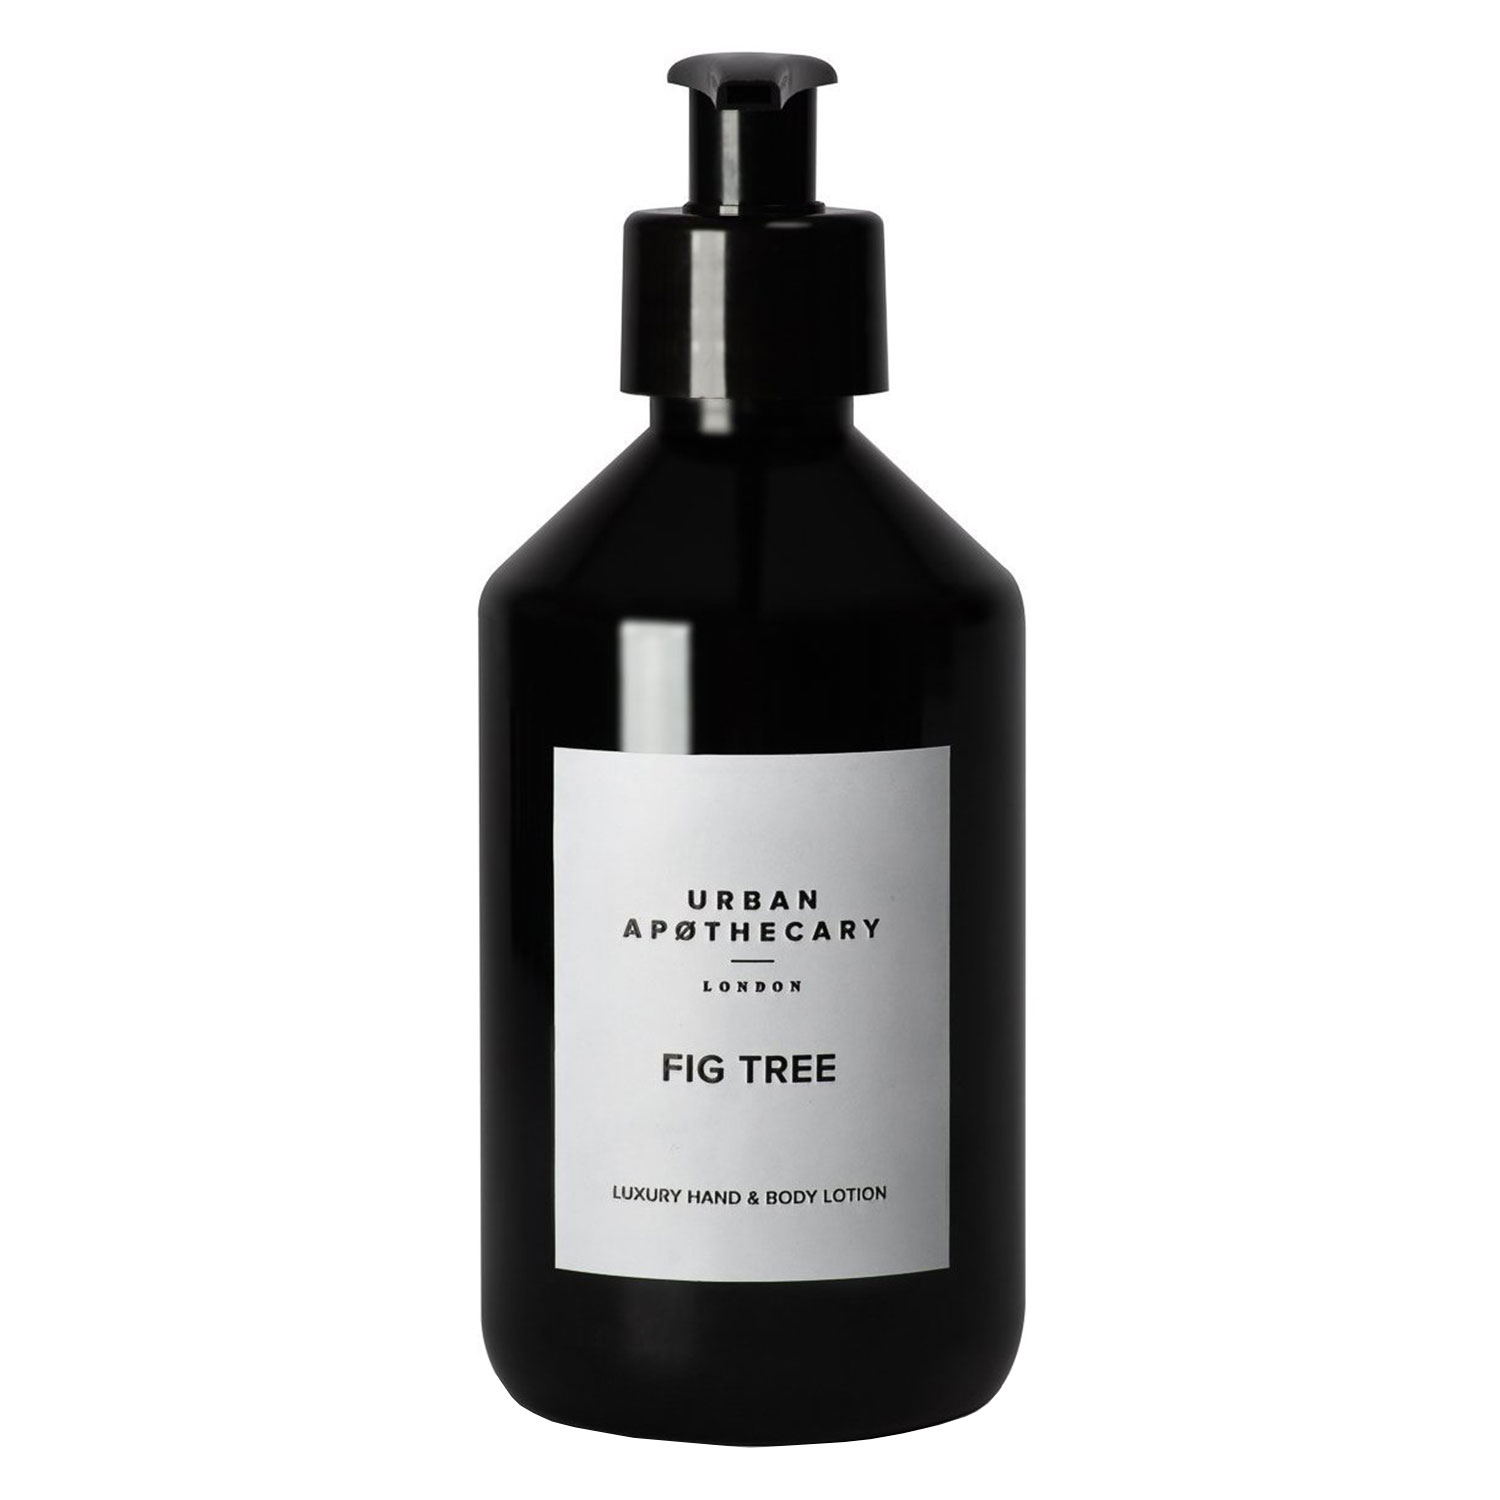 Urban Apothecary - Luxury Hand & Body Lotion Fig Tree